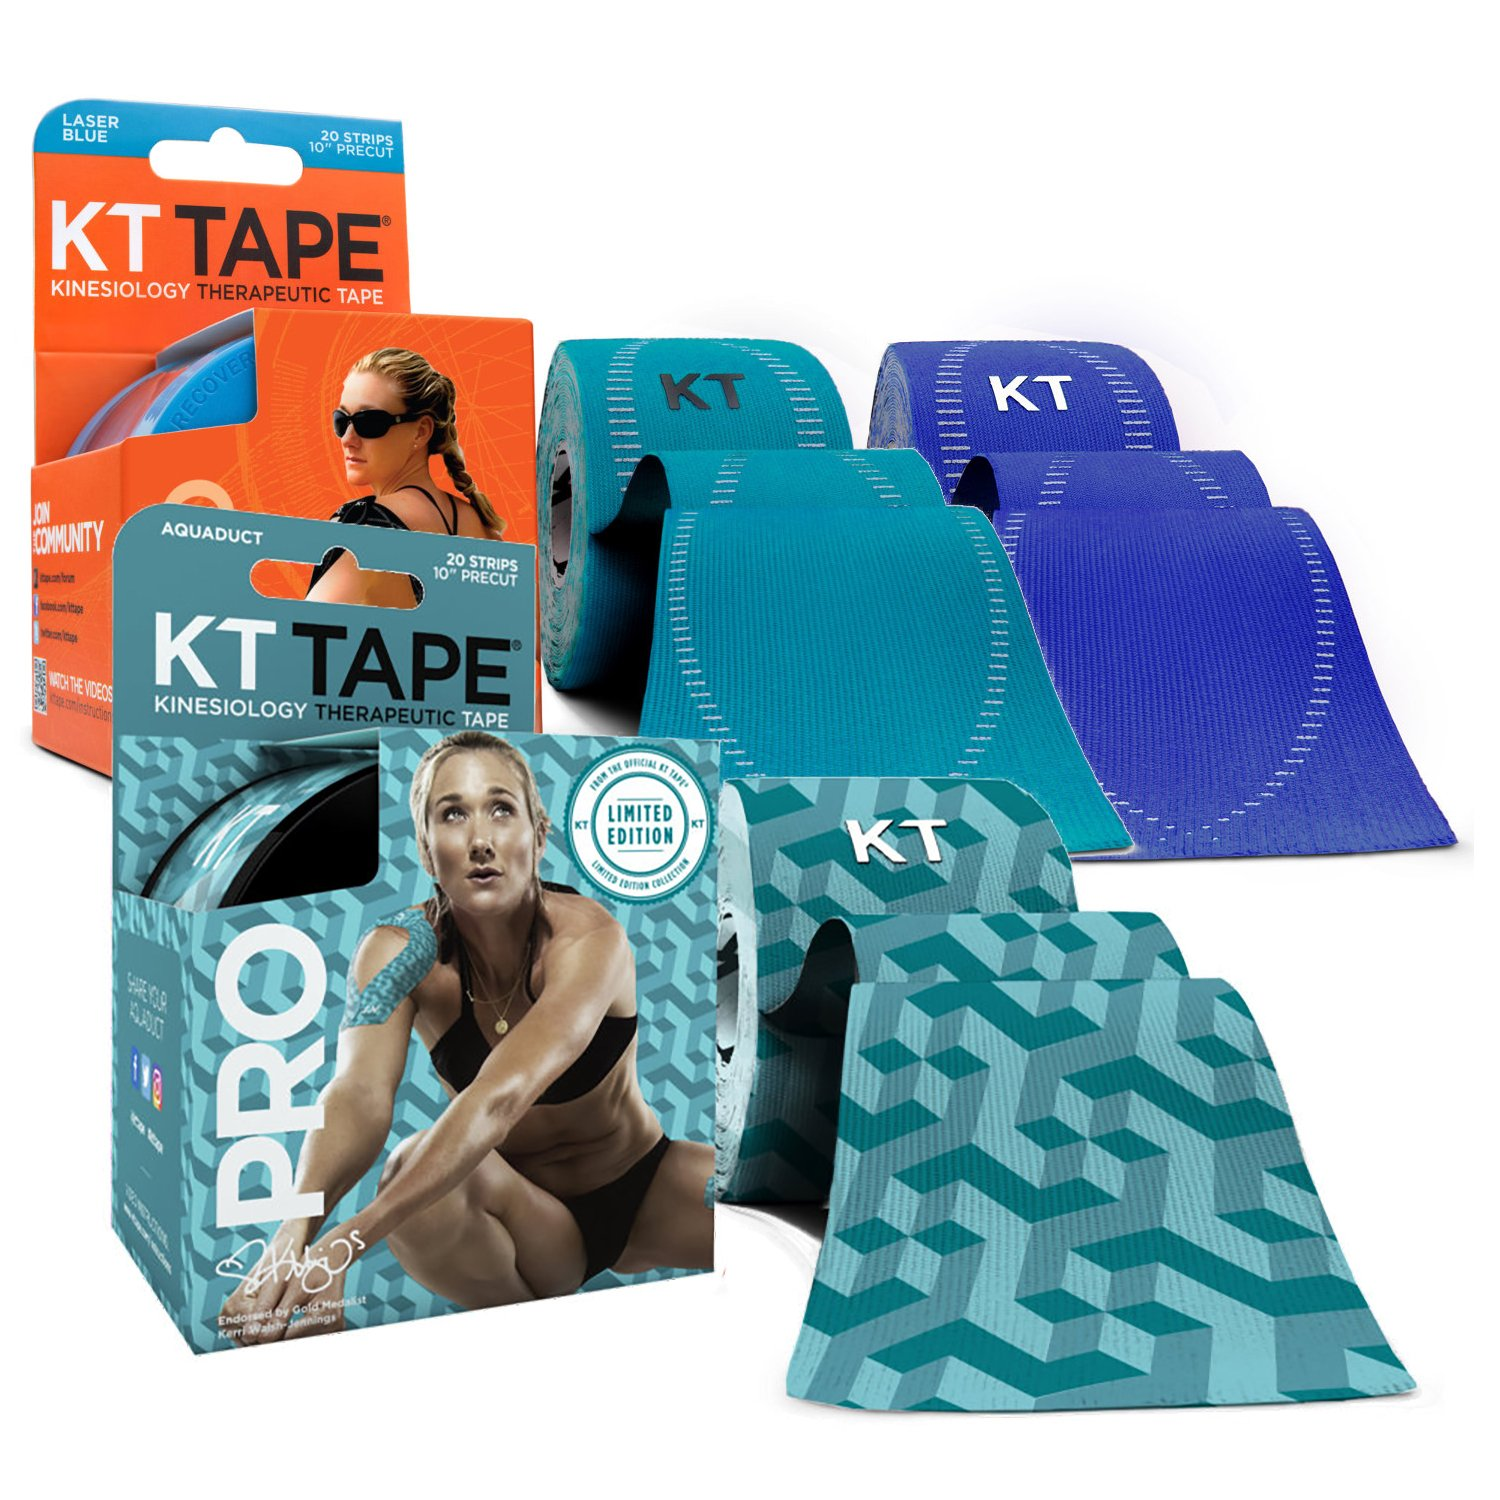 KT Tape PRO Precut 60-Strip Synthetic Kinesiology Tape Three-Roll Bundle - Aquaduct, Sonic Blue, Laser Blue